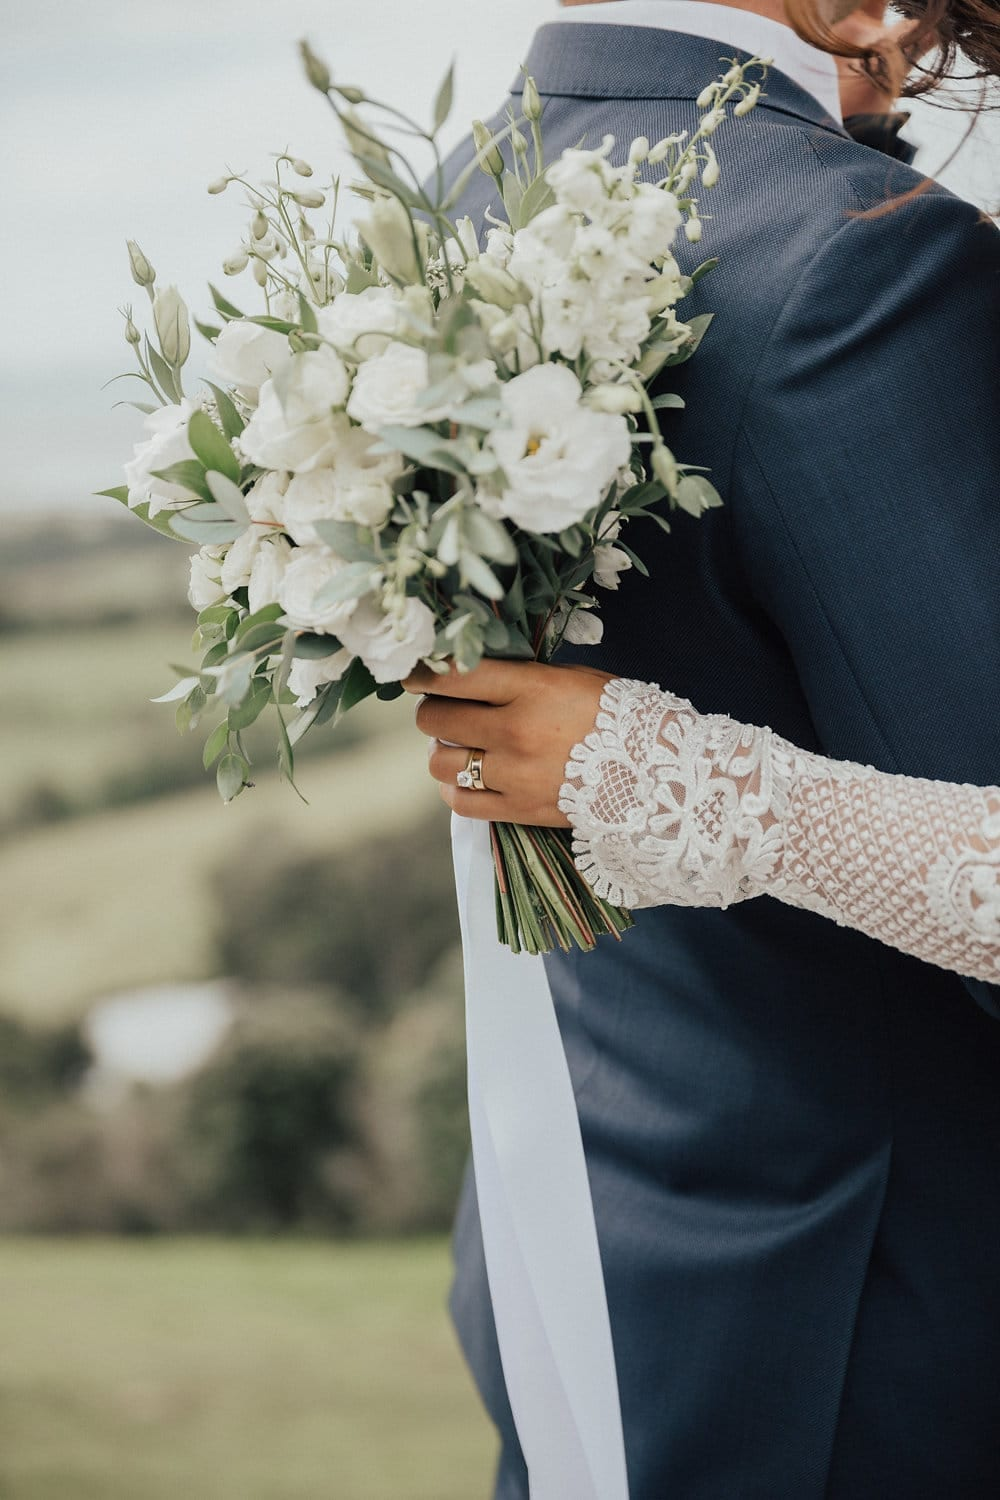 Real Weddings | Vinka Design | Real Brides Wearing Vinka Gowns | Nicole and Hayden close up Hayden's back with bouquet and long sleeve of dress